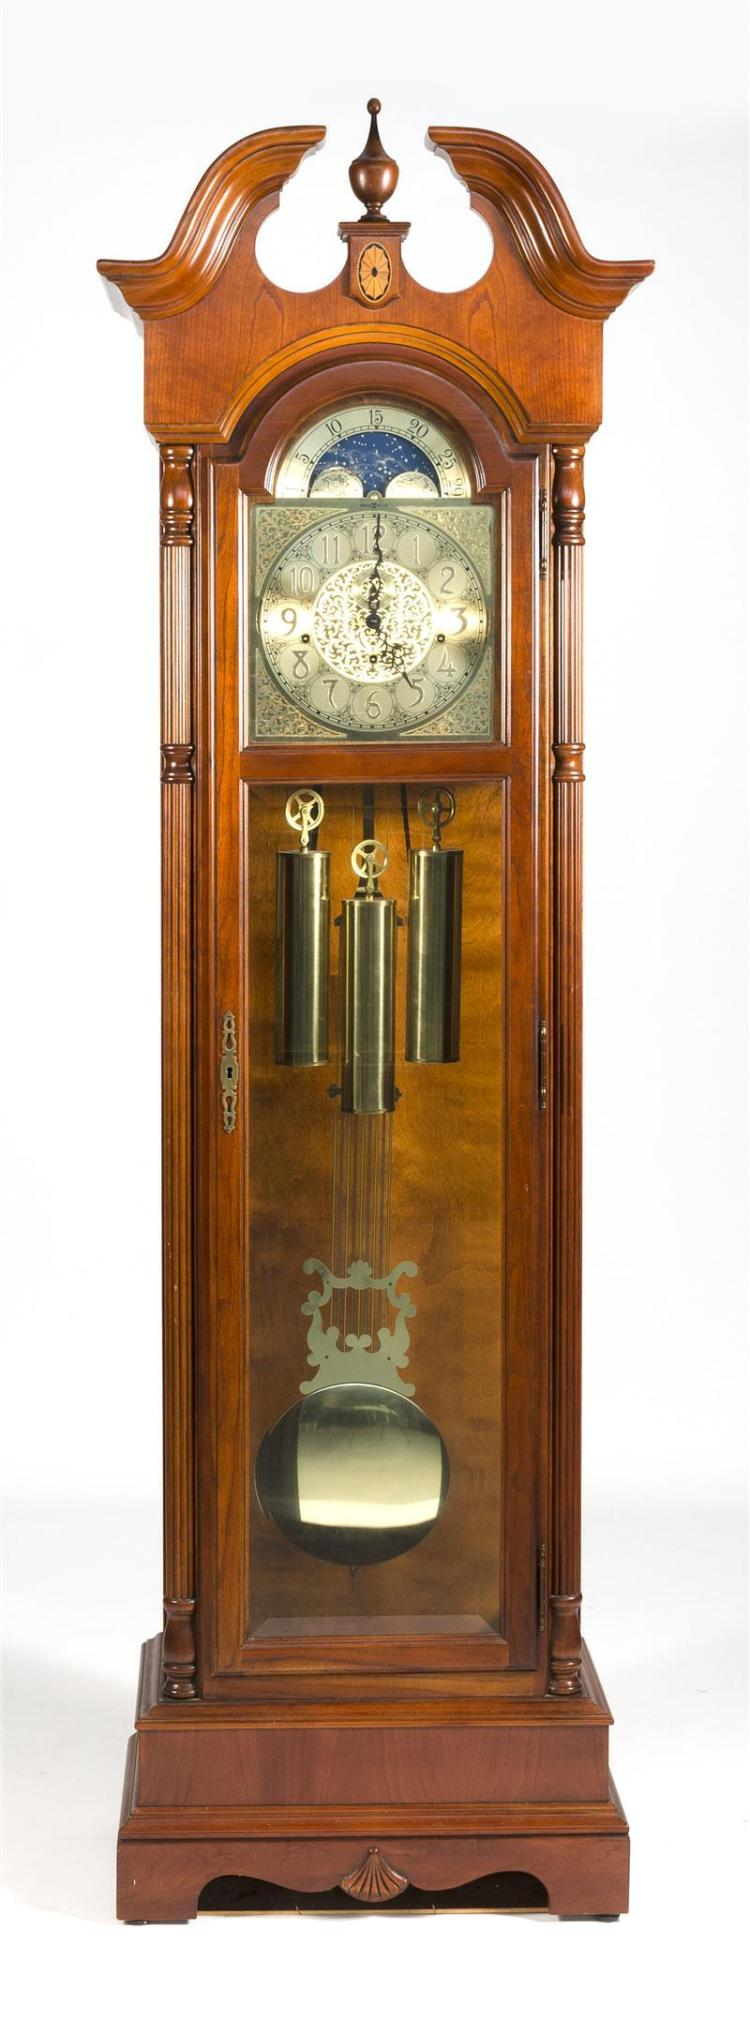 HOWARD MILLER CLOCK In walnut veneer with broken arch top. Includes weights and pendulum. Height 79.5